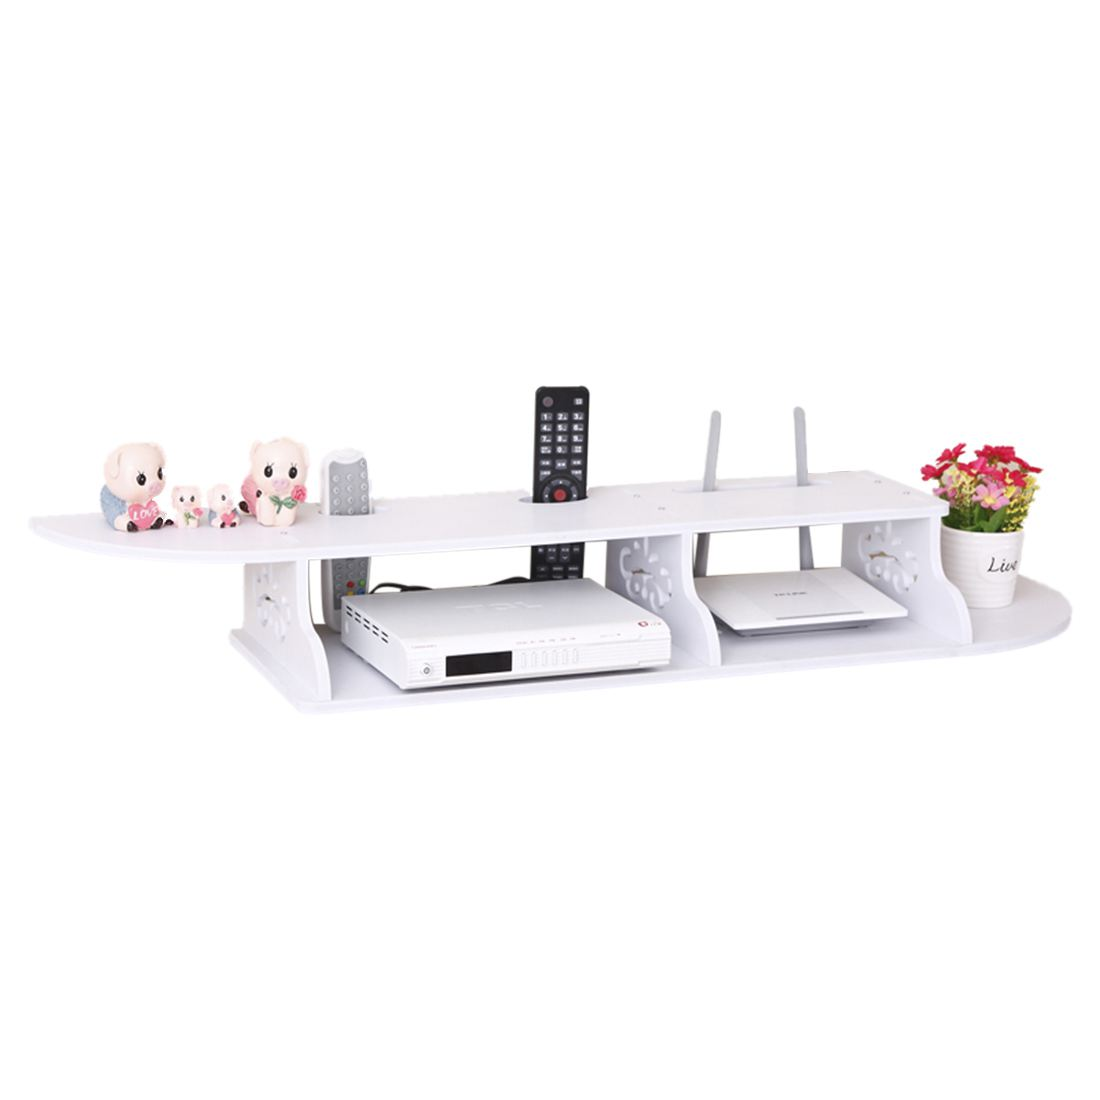 Hollow Carved 2 Tier Floating Wall Shelves Skybox CD DVD Bookcase Storage Unit- white вытяжка konigin skybox 60 white